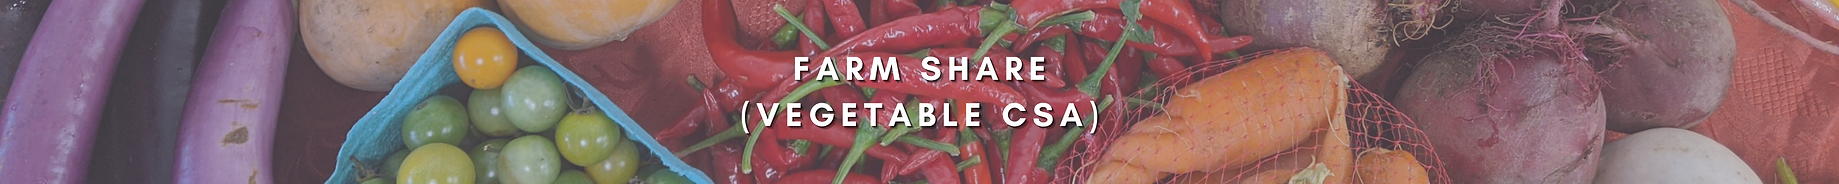 Farm Share Page Header.png